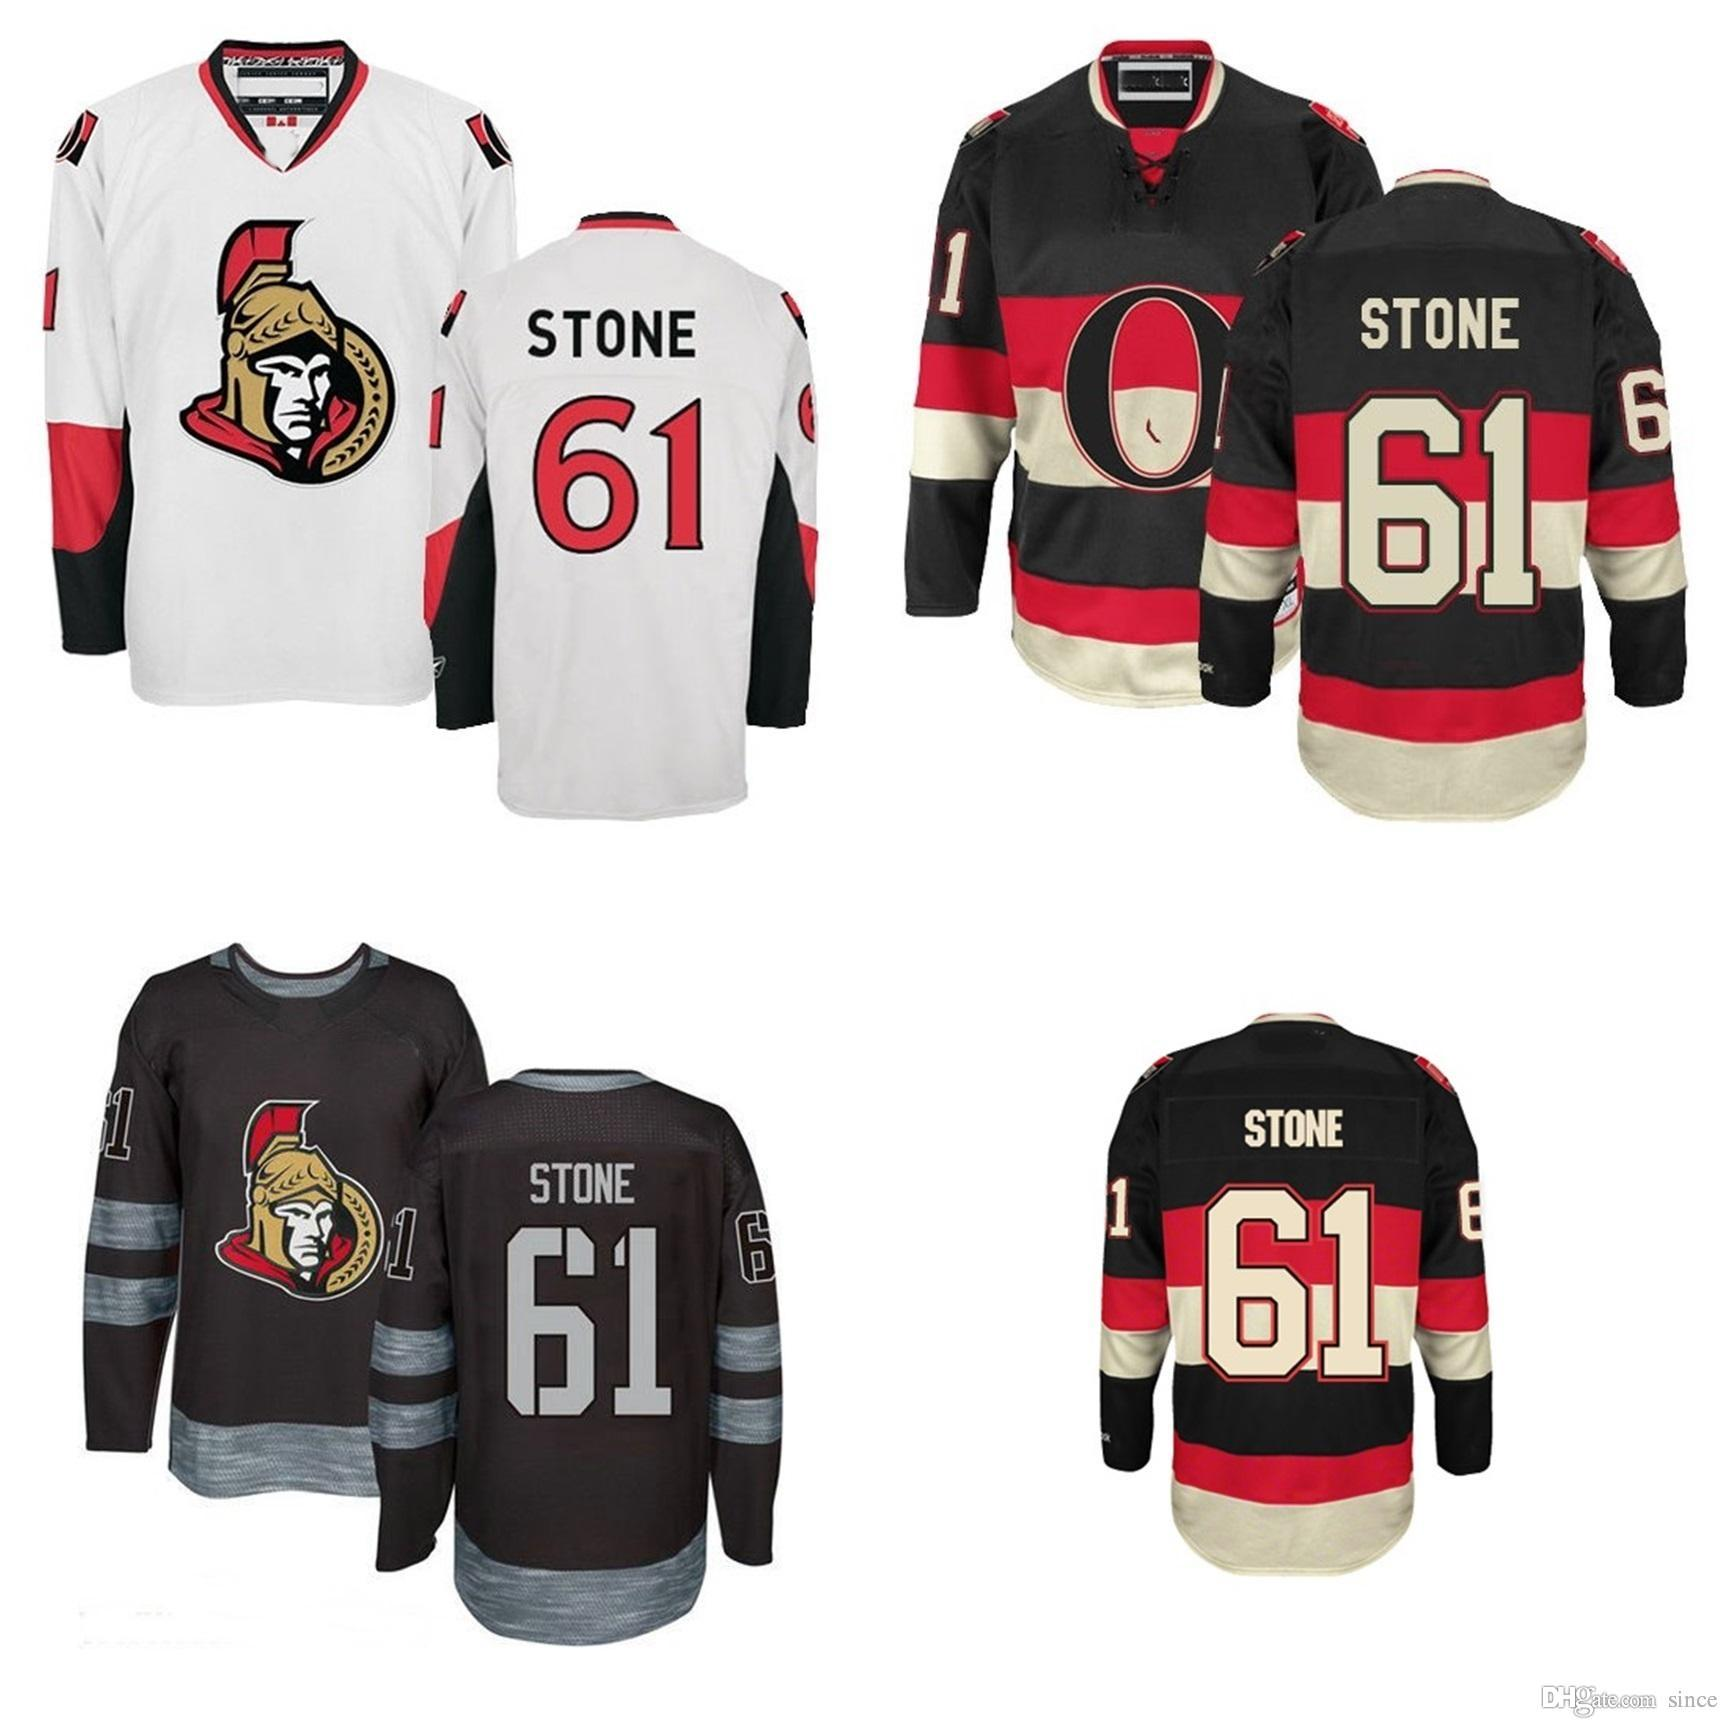 Mens Ottawa Senators Jerseys 61 Mark Stone 100th Anniversary Jersey Third  Black Authentic Away White Ice Hockey Jersey Size S-3XL 61 Mark Stone  JerseyS ... f73420c95